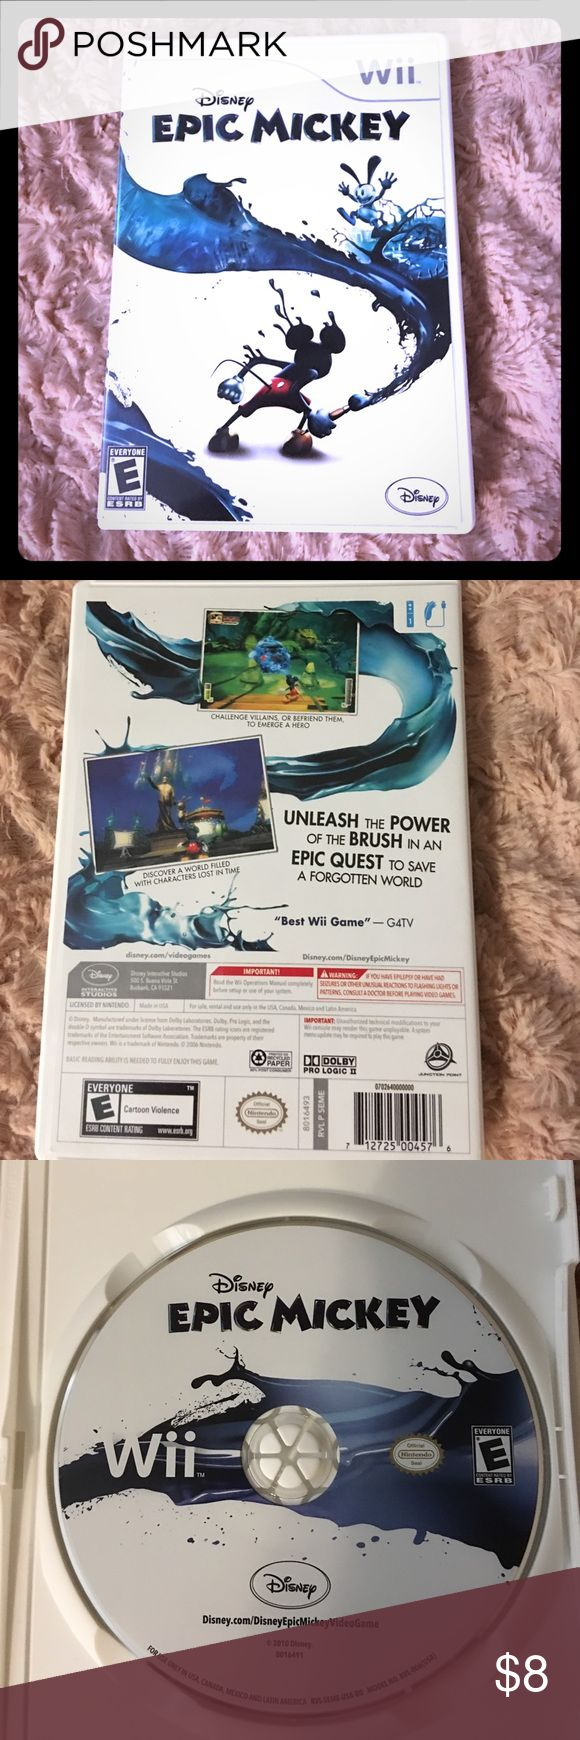 Disney's Epic Mickey Wii game: Epic Mickey. Rarely used. Nintendo Other